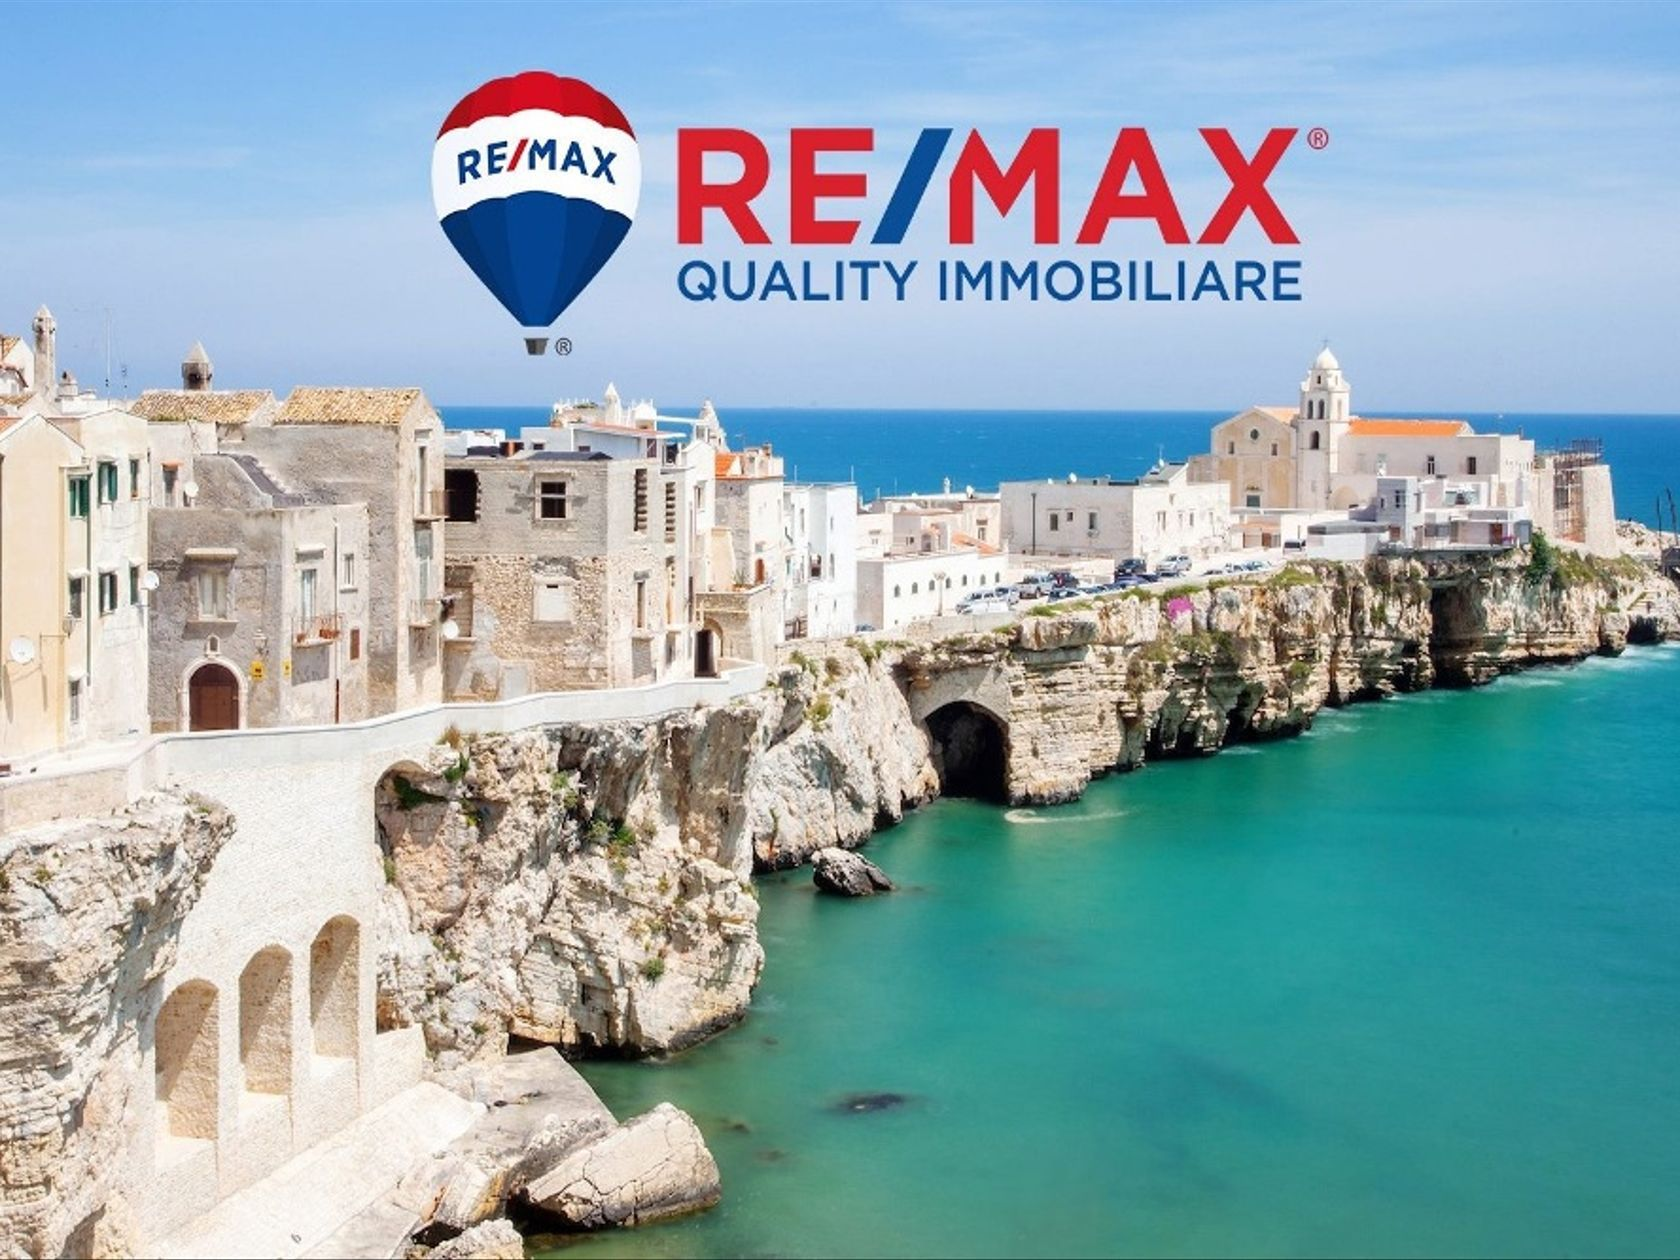 RE/MAX Quality Immobiliare Vieste